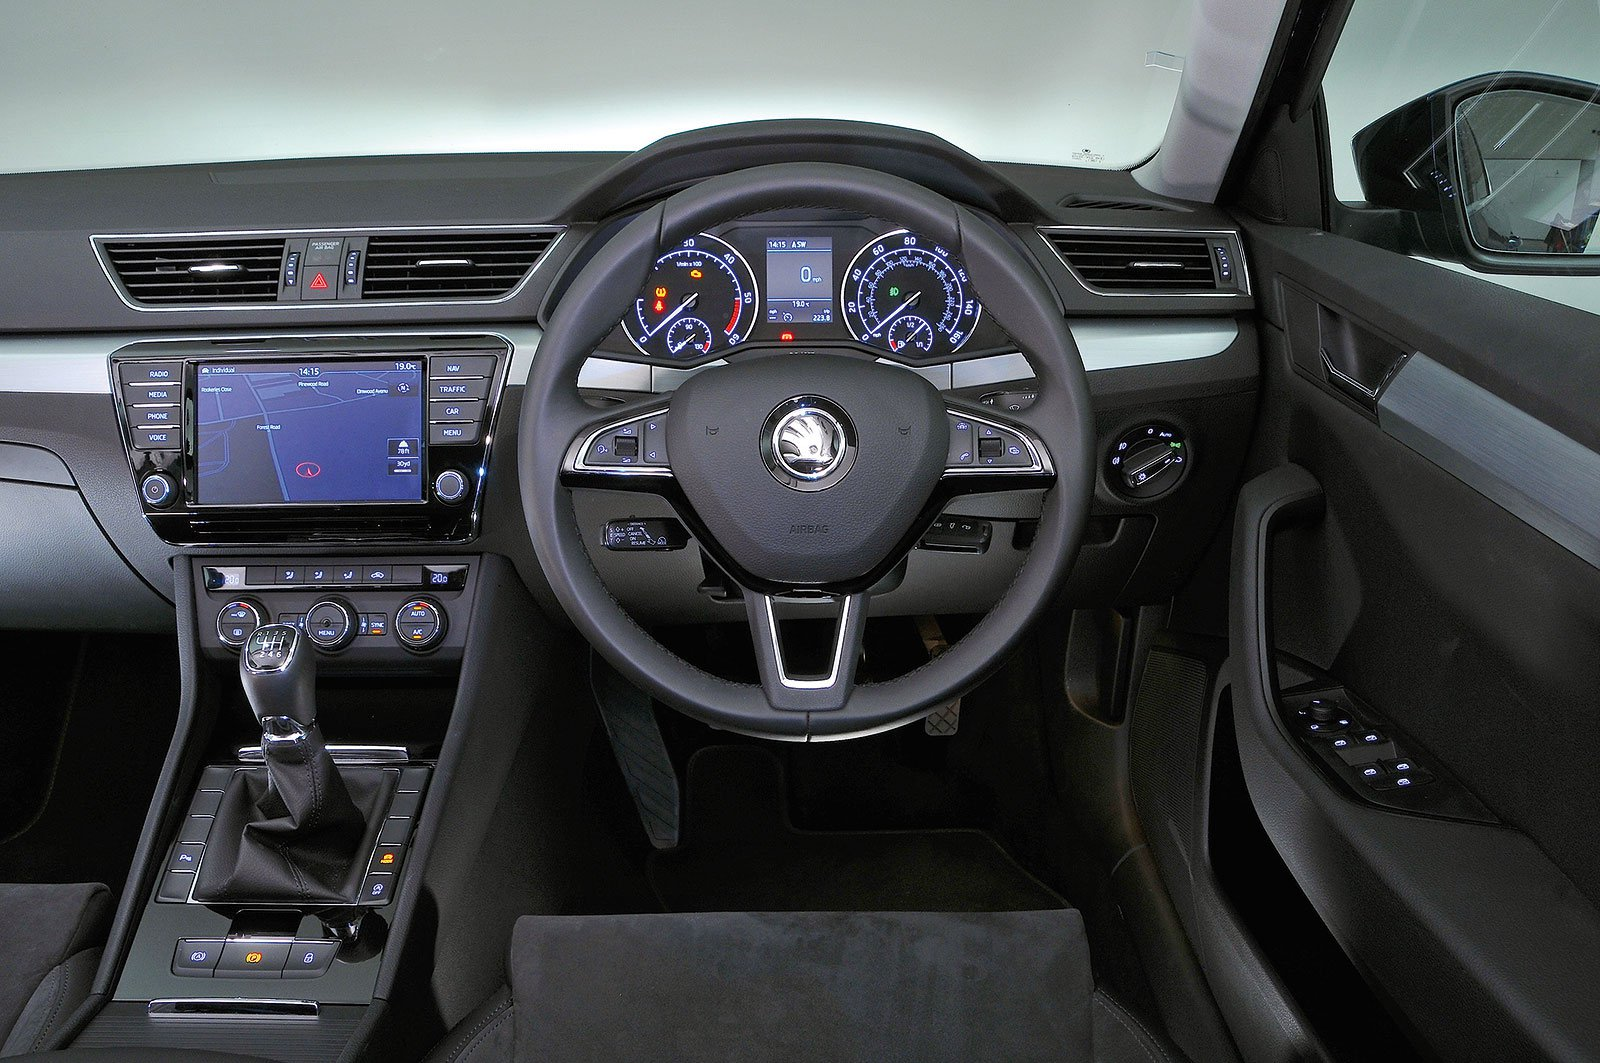 Skoda Superb (2016-present) - interior